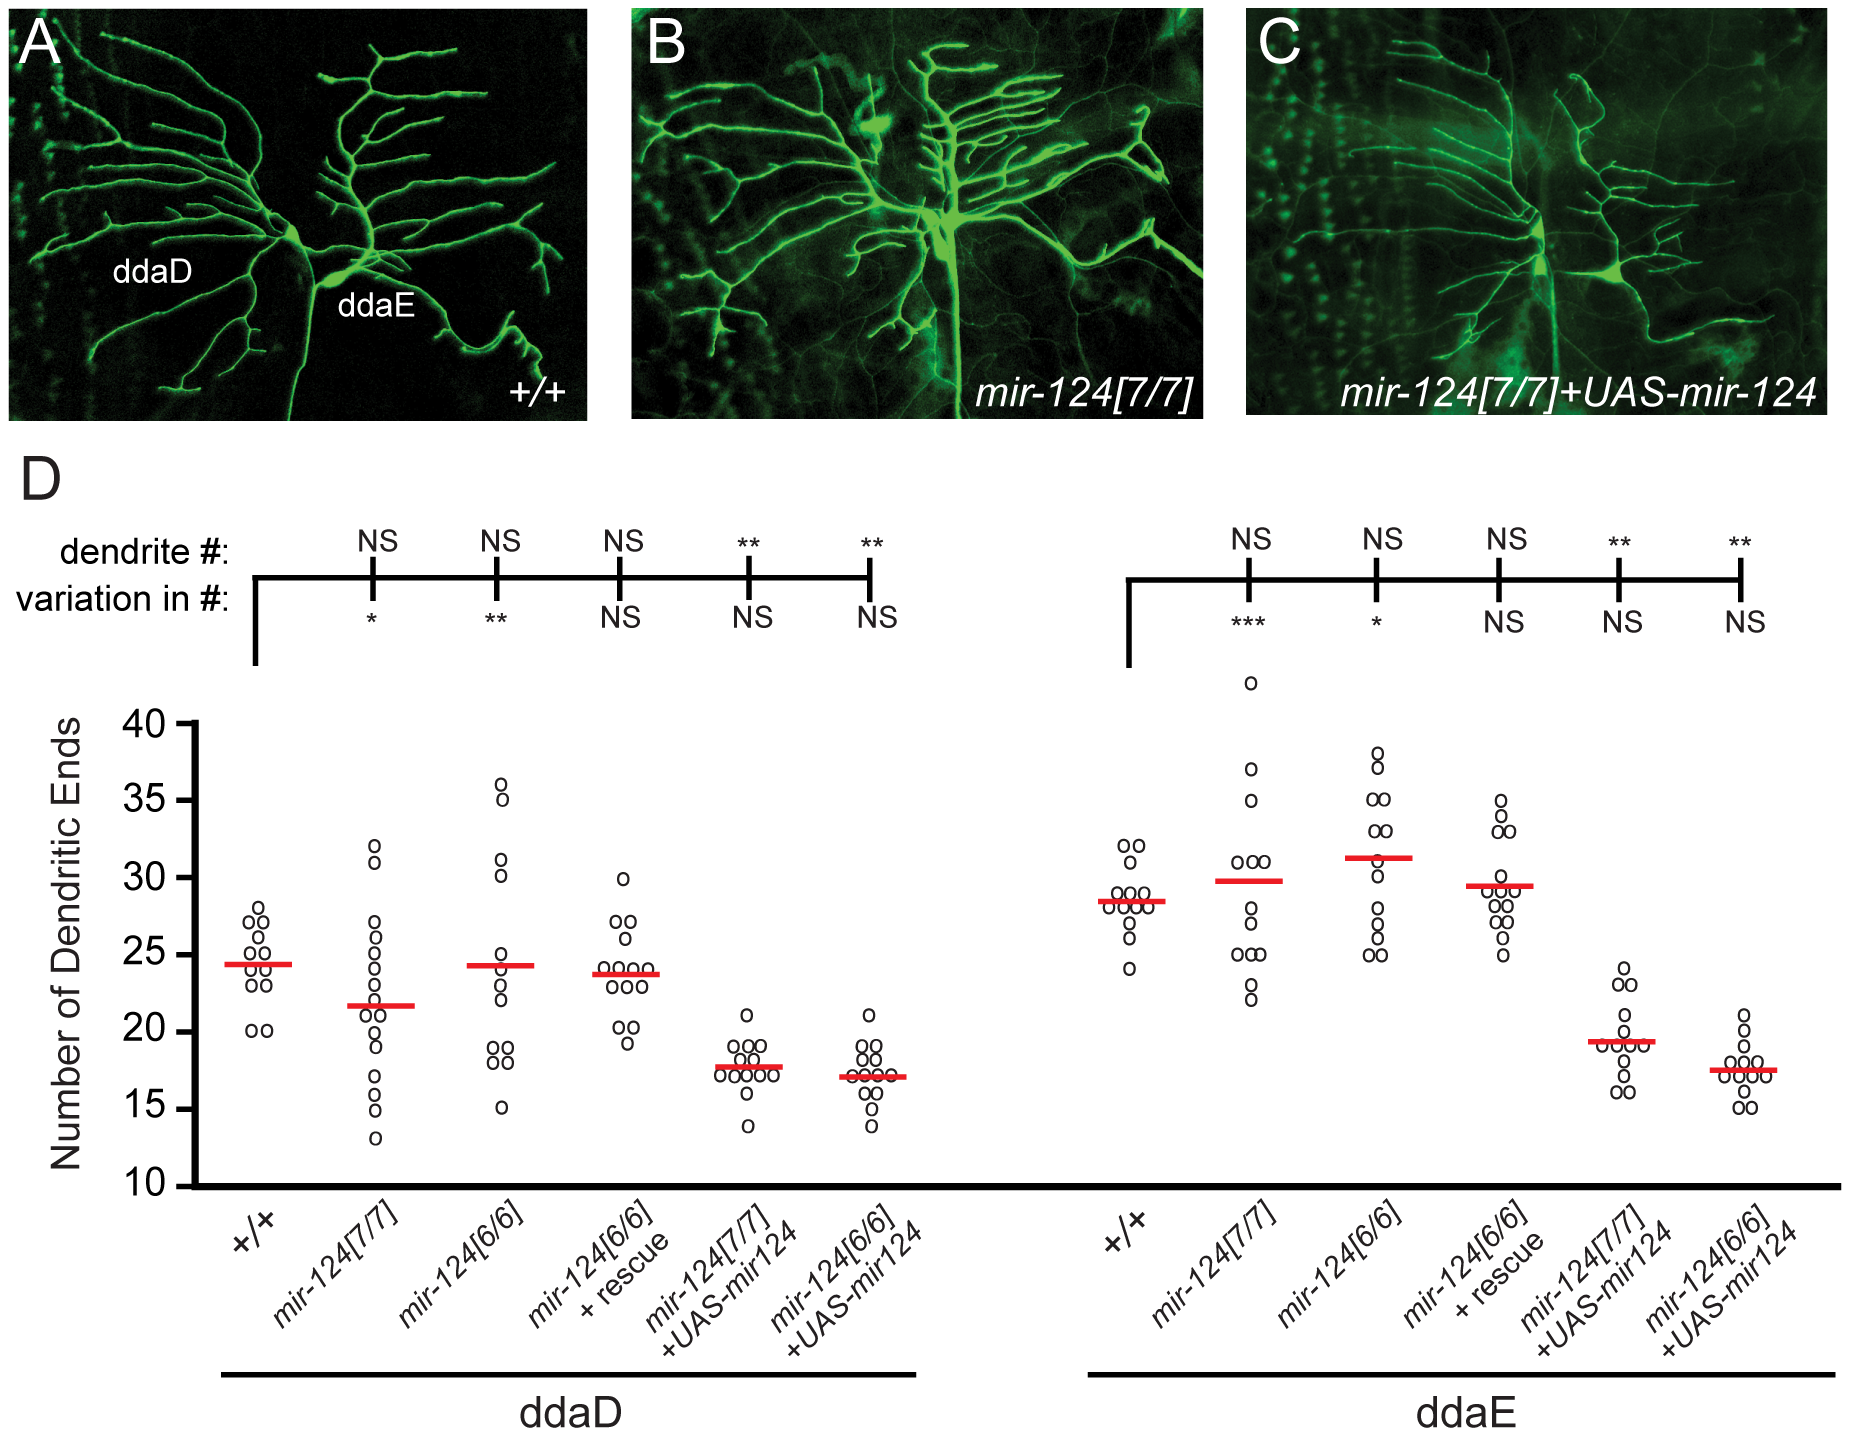 <i>mir-124</i> suppresses variation in dendrite numbers on sensory neurons.